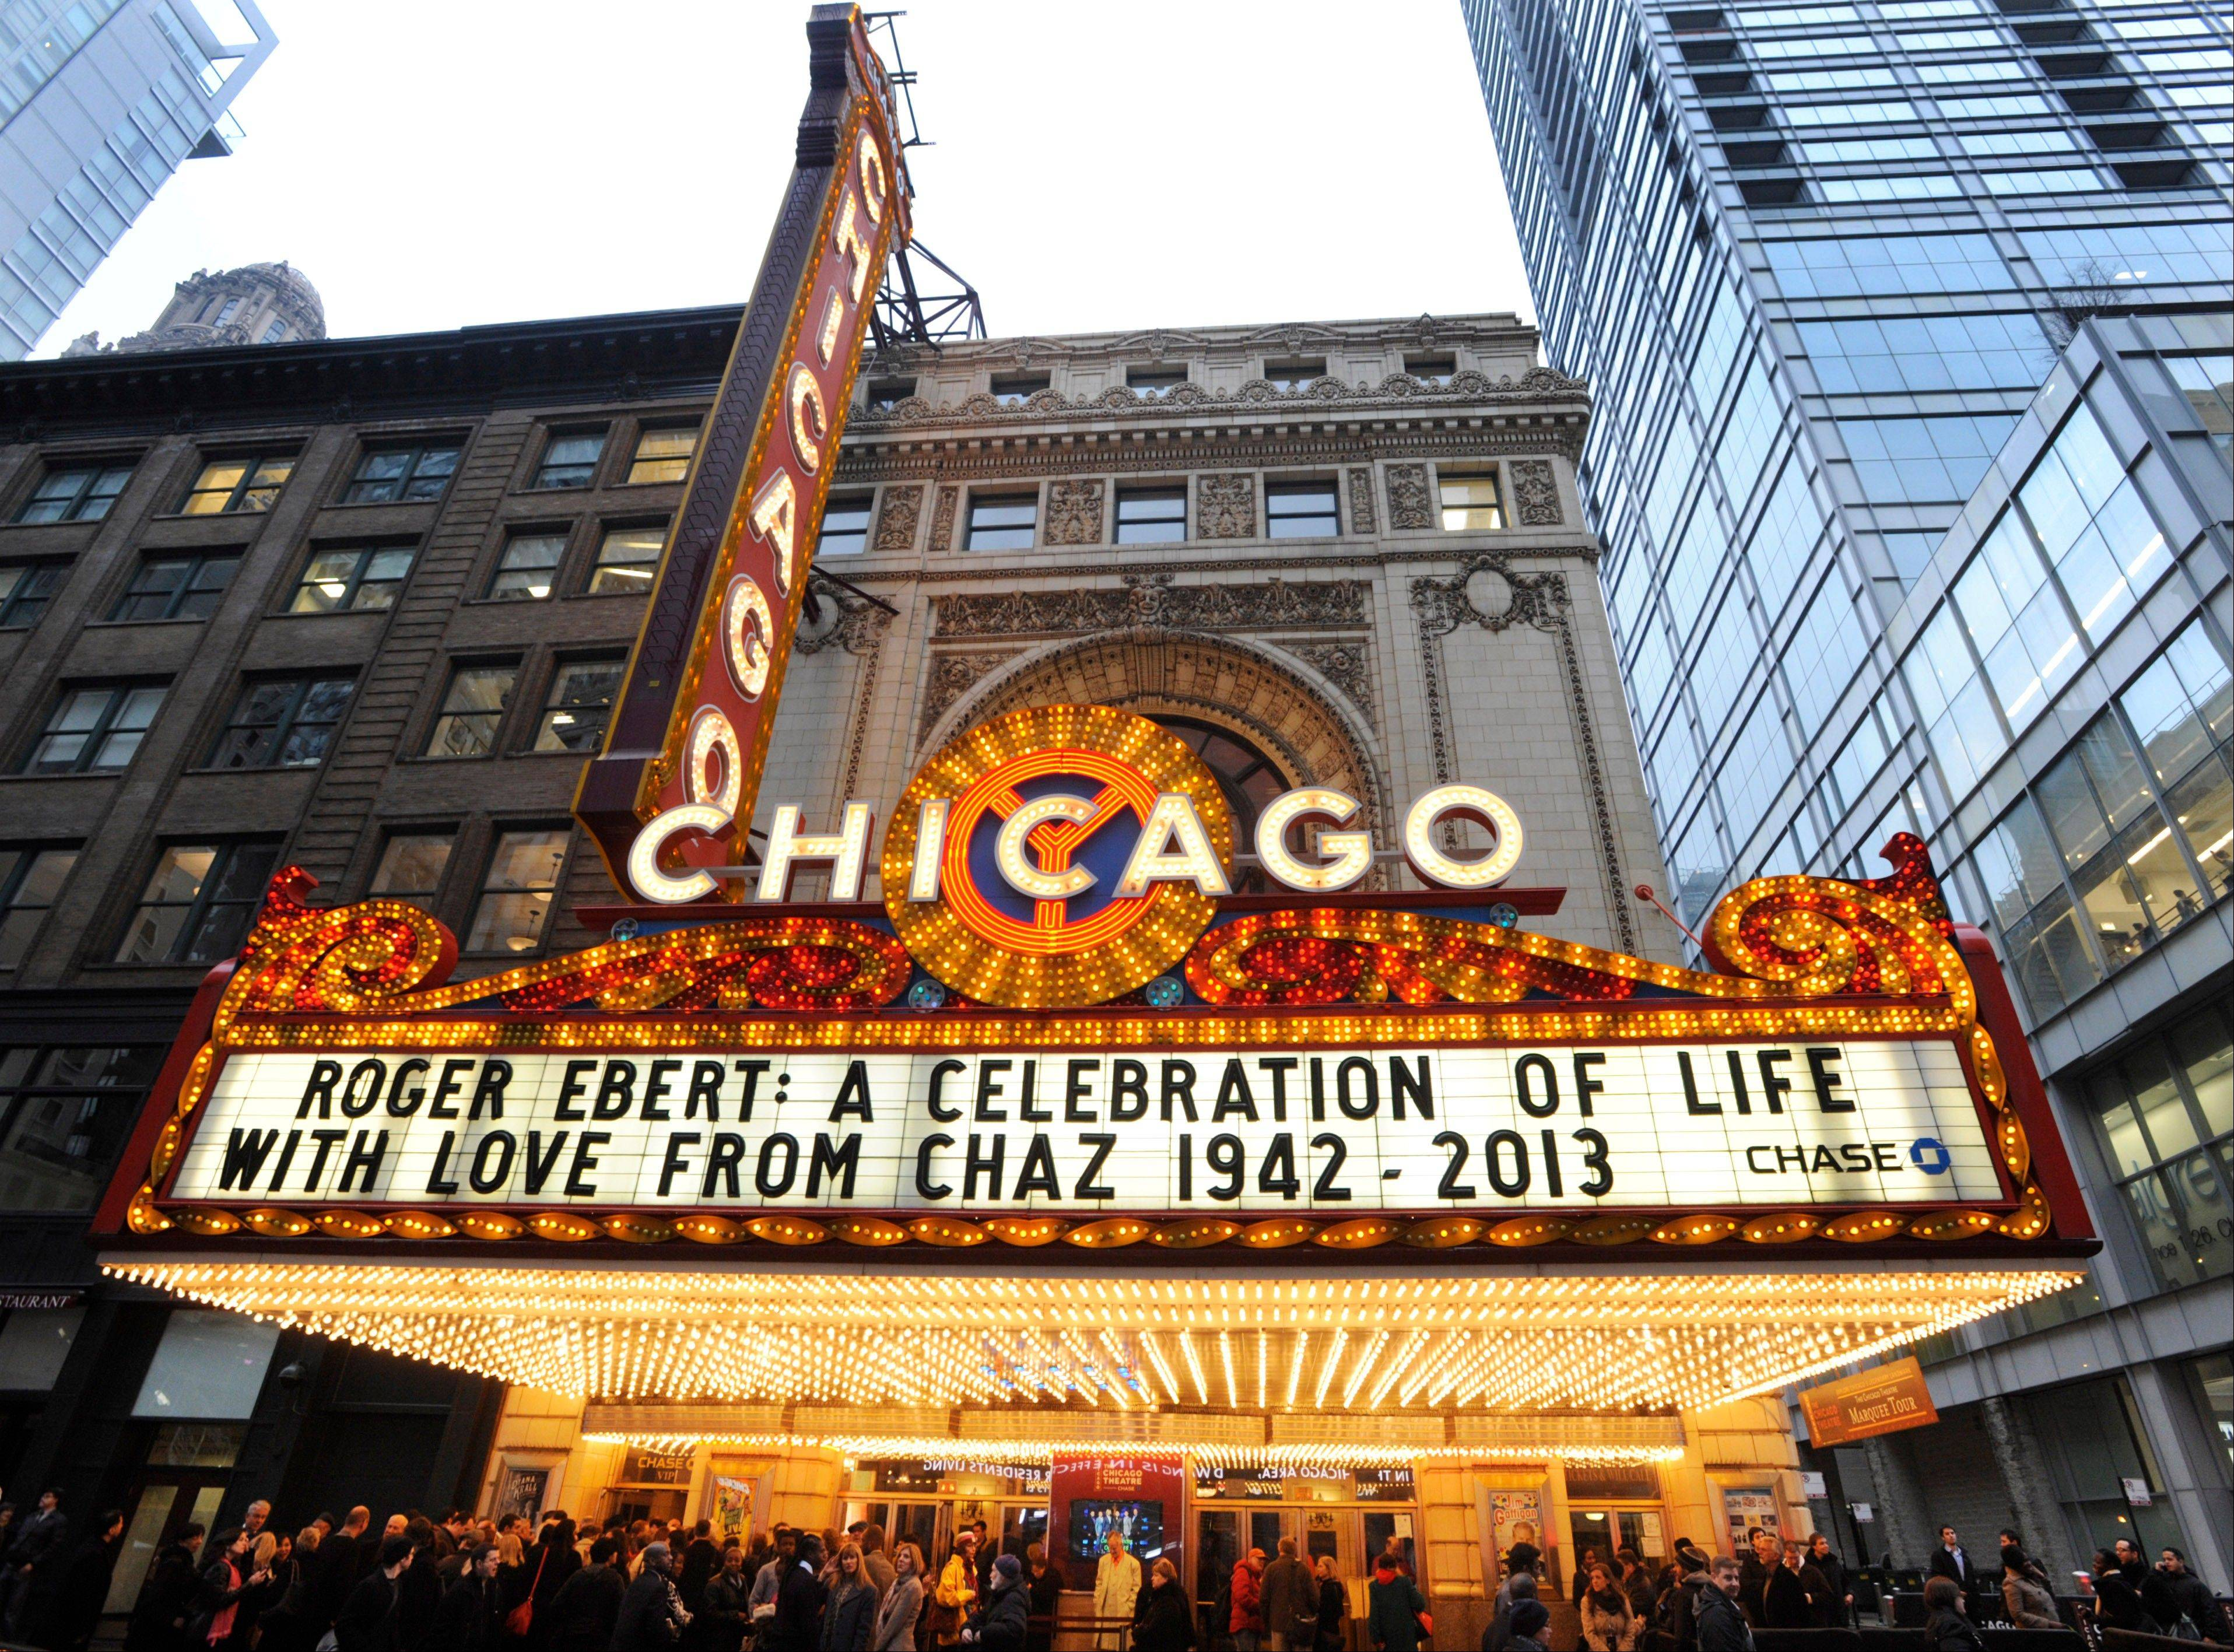 The Chicago Theater marquee before a memorial for film critic Roger Ebert in Chicago, Thursday, April 11, 2013. The Pulitzer Prize winning critic died last week at the age of 70 after a long battle with cancer.